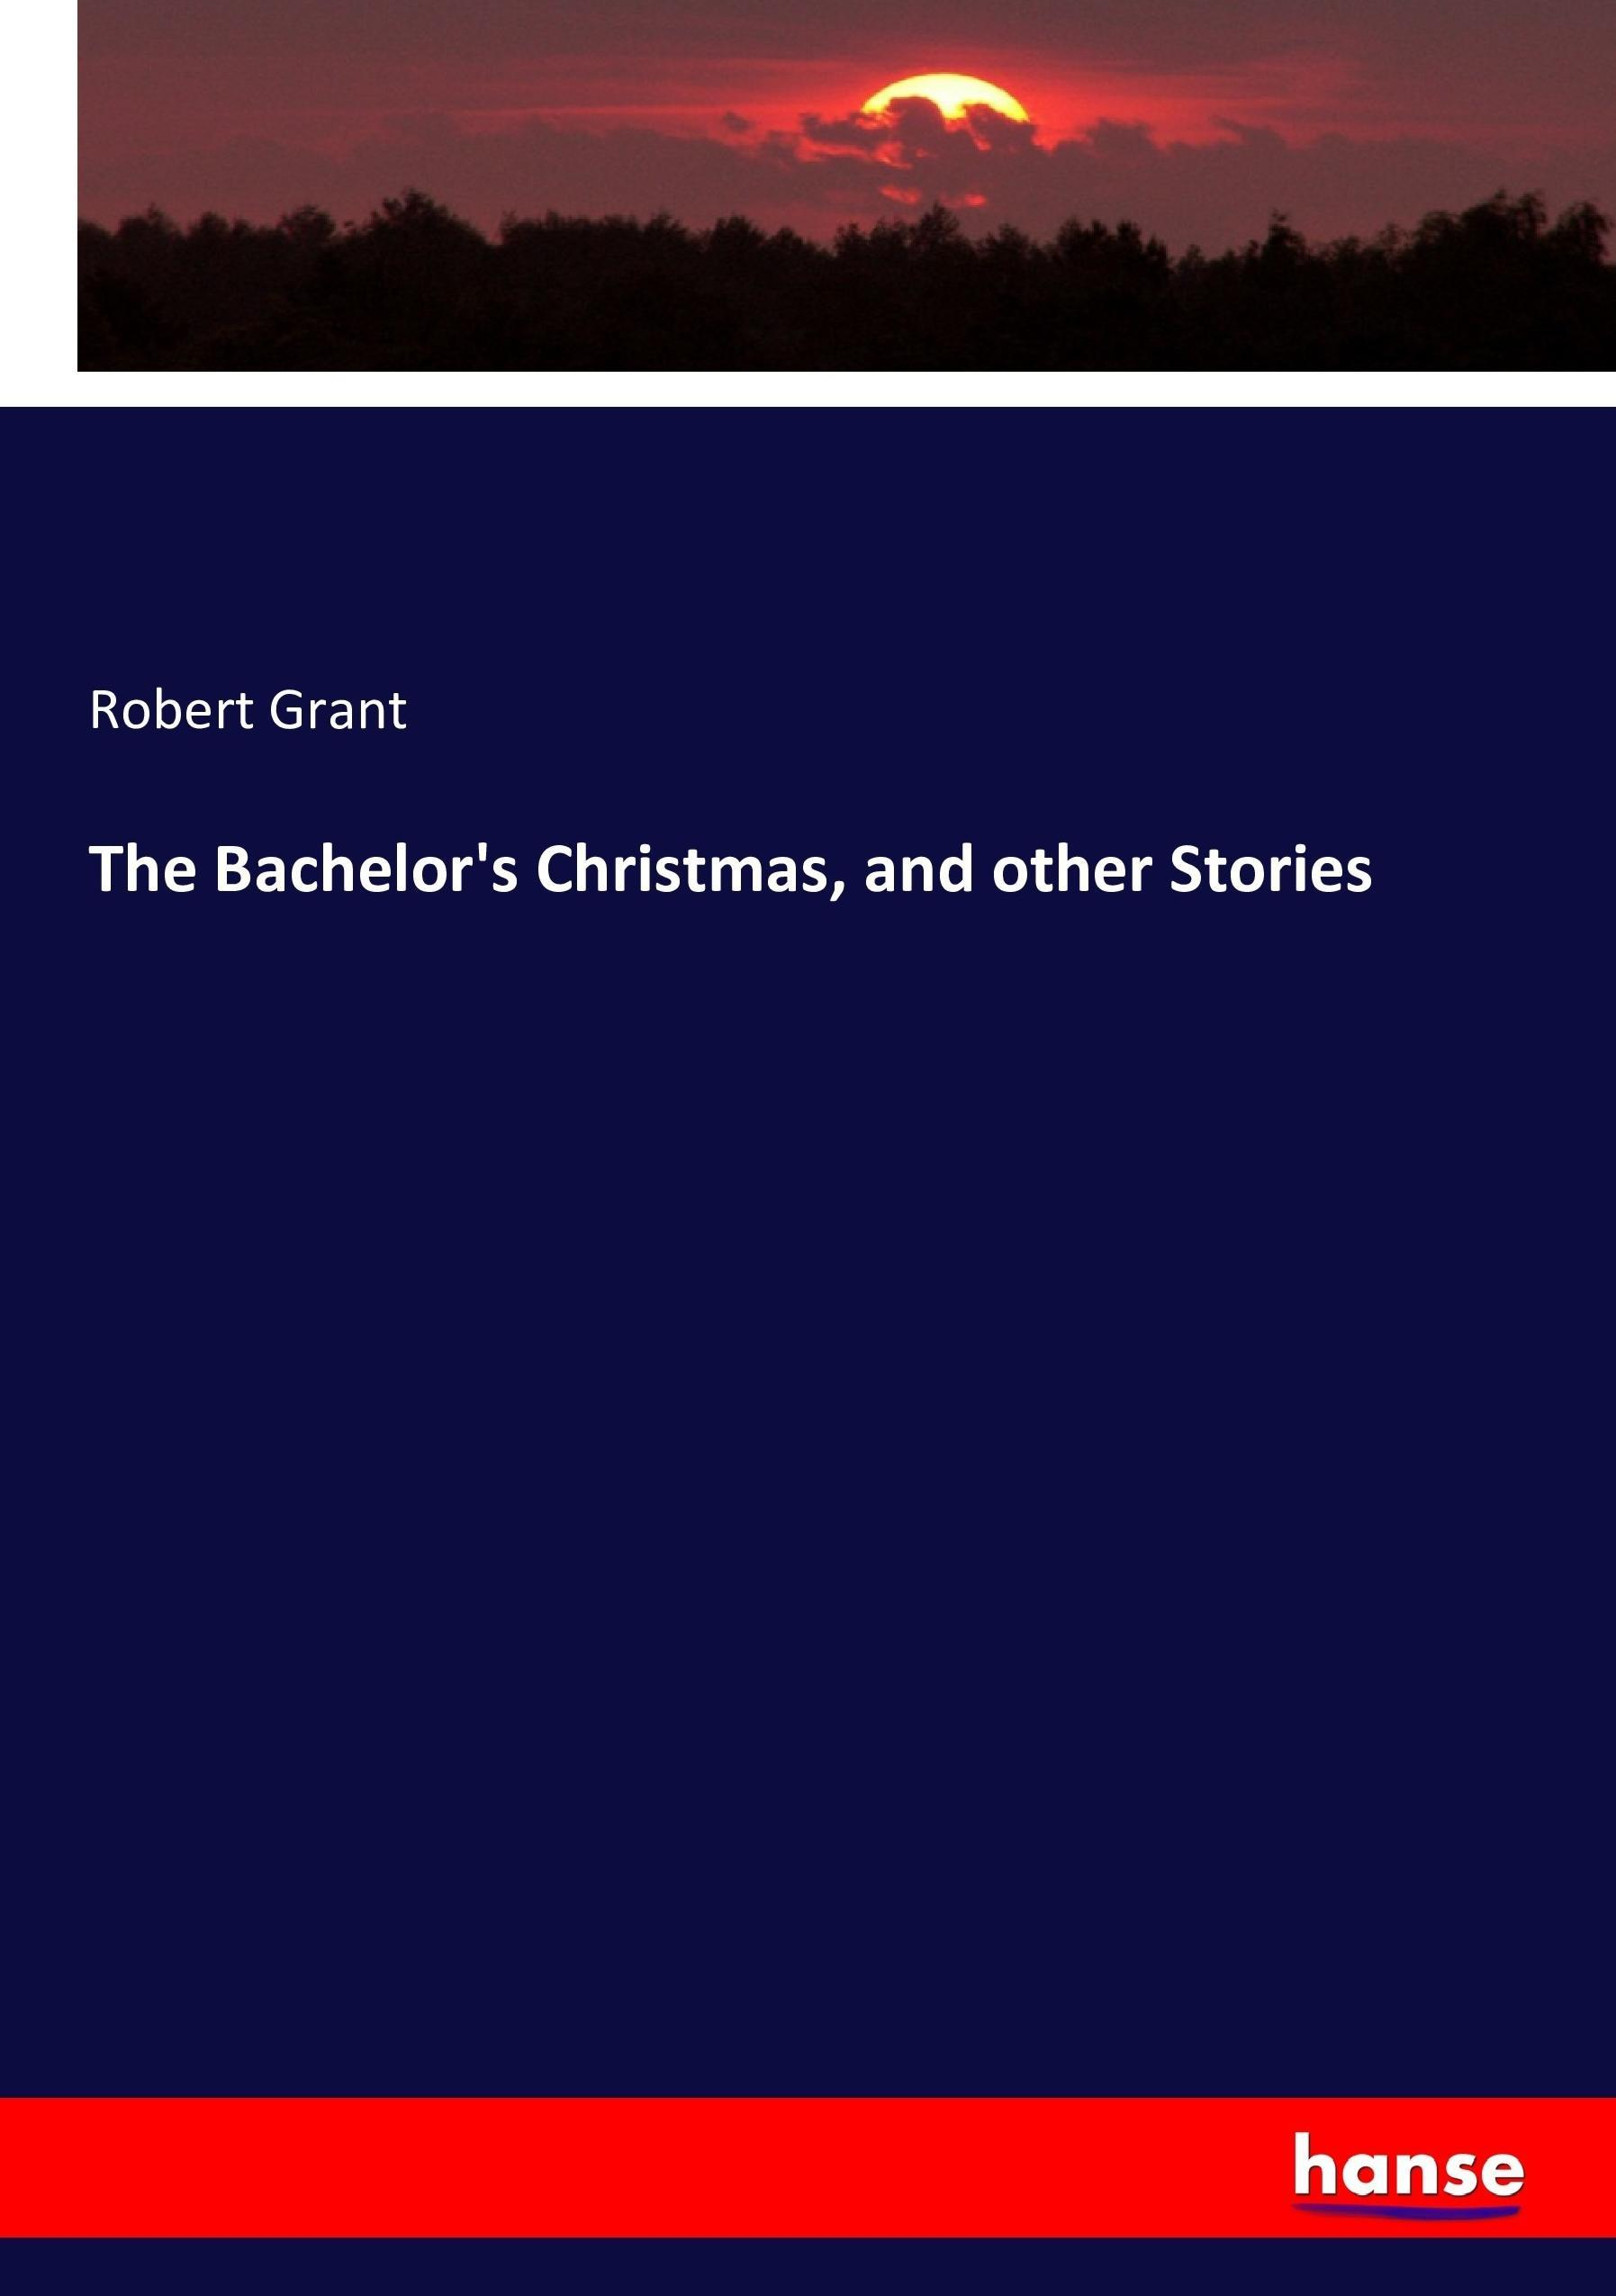 The Bachelor's Christmas, and other Stories Robert Grant